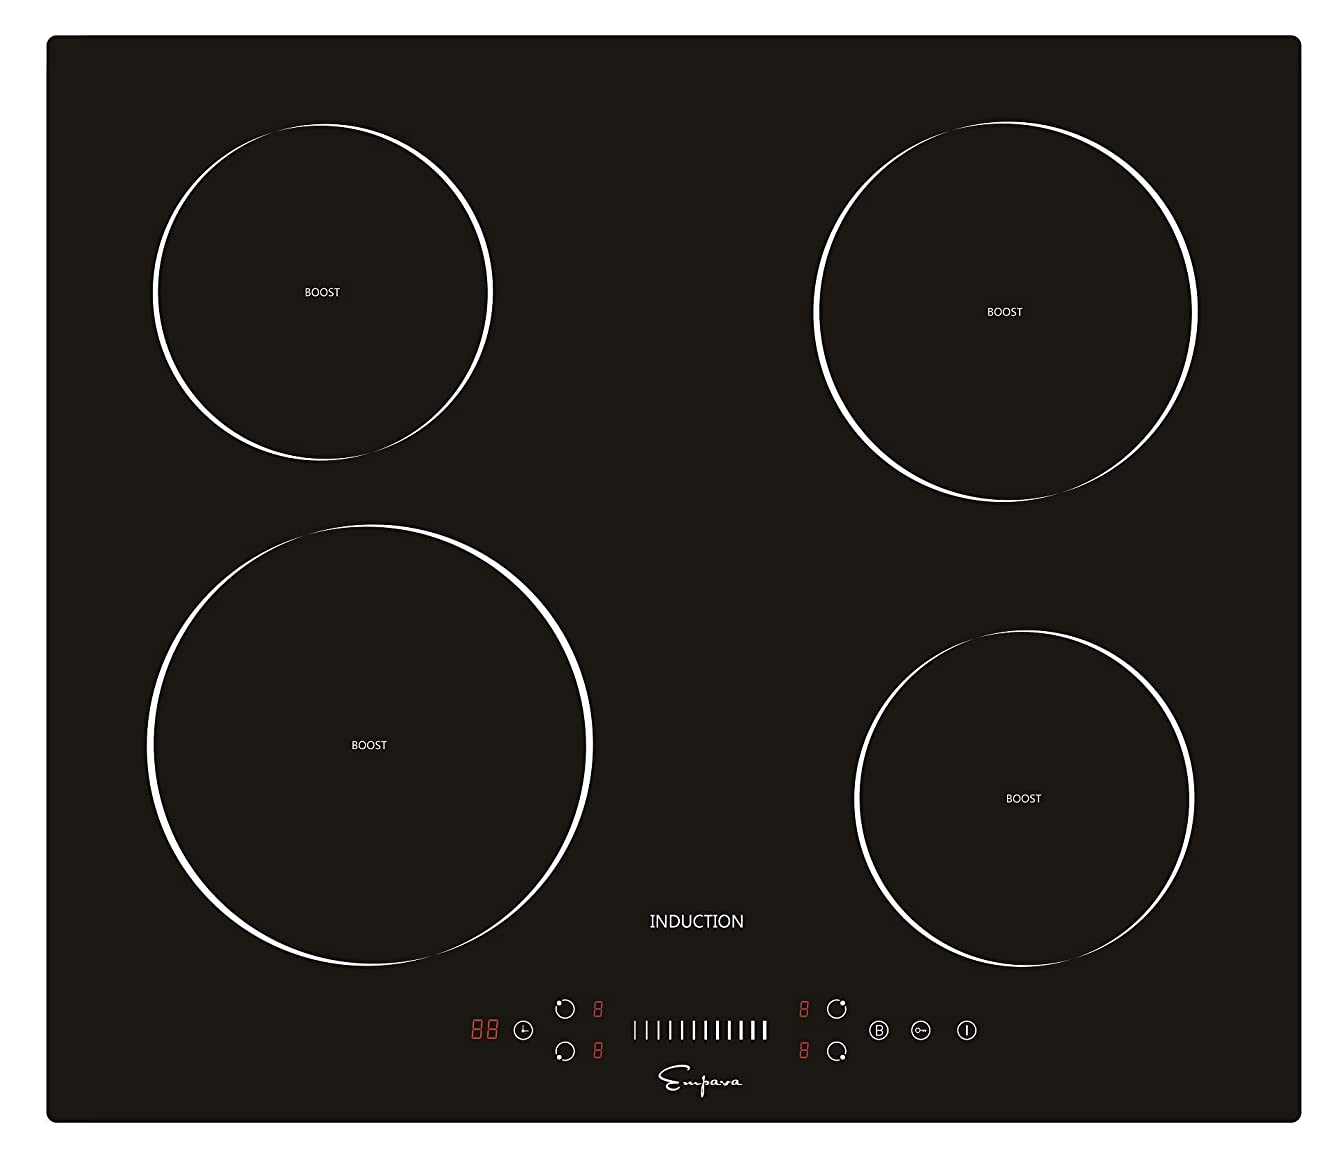 Empava EMPV-IDC24 Electric Induction Cooktop with 4 Booster Burners Smooth Surface Black Tempered Glass, 24 Inch ohyhfduihrhop63